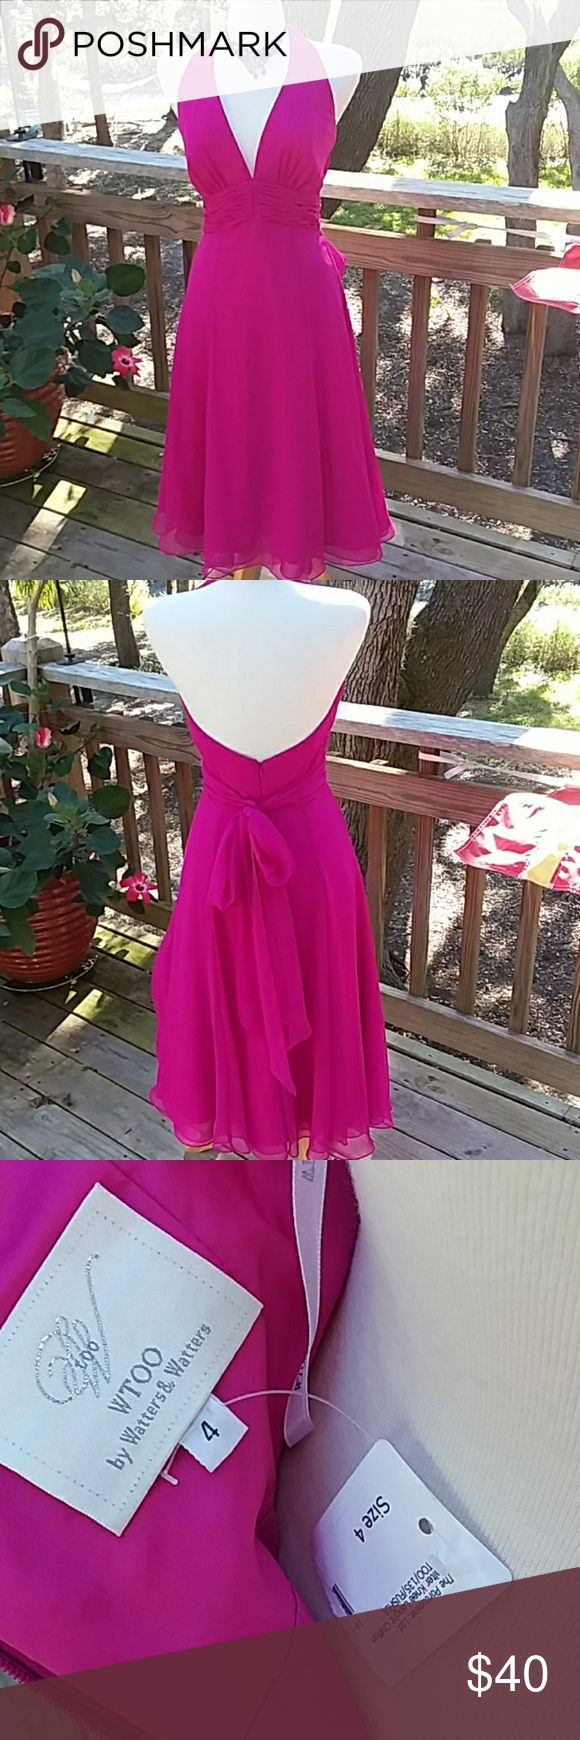 "NWT WTOO halter chiffon dress Gorgeous knee lenght chiffon dress in fyshia.  Deep v neck with attached sash that ties in the back, boning on the sides, back zipper, covered buttons at neckline.  NWT.  Full  skirt that has two layers of chiffon over two layers of lining. LENGTH IS 36"" armpit to hemline Wtoo Dresses"